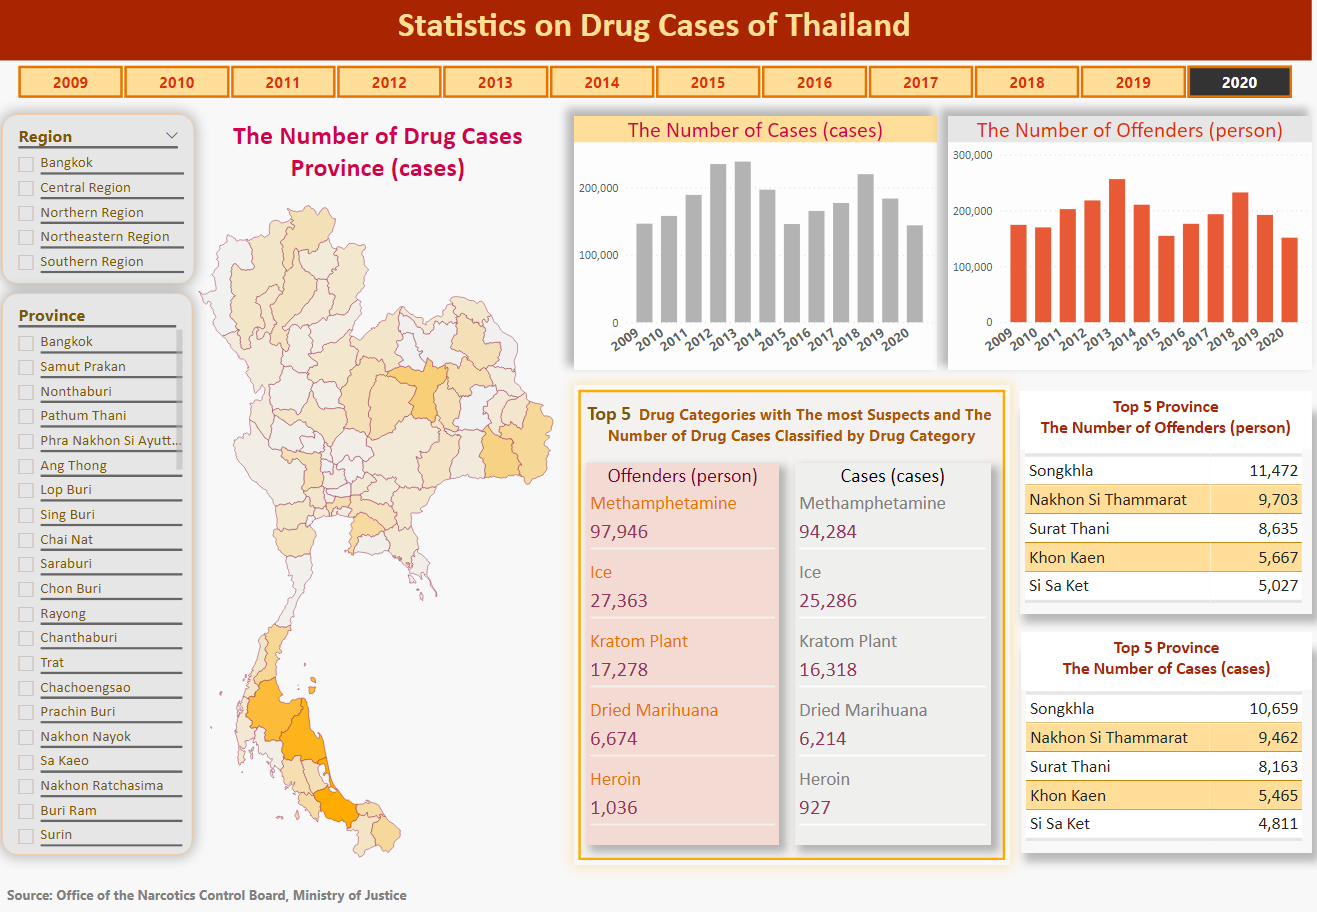 Statistics on Drug Cases of Thailand